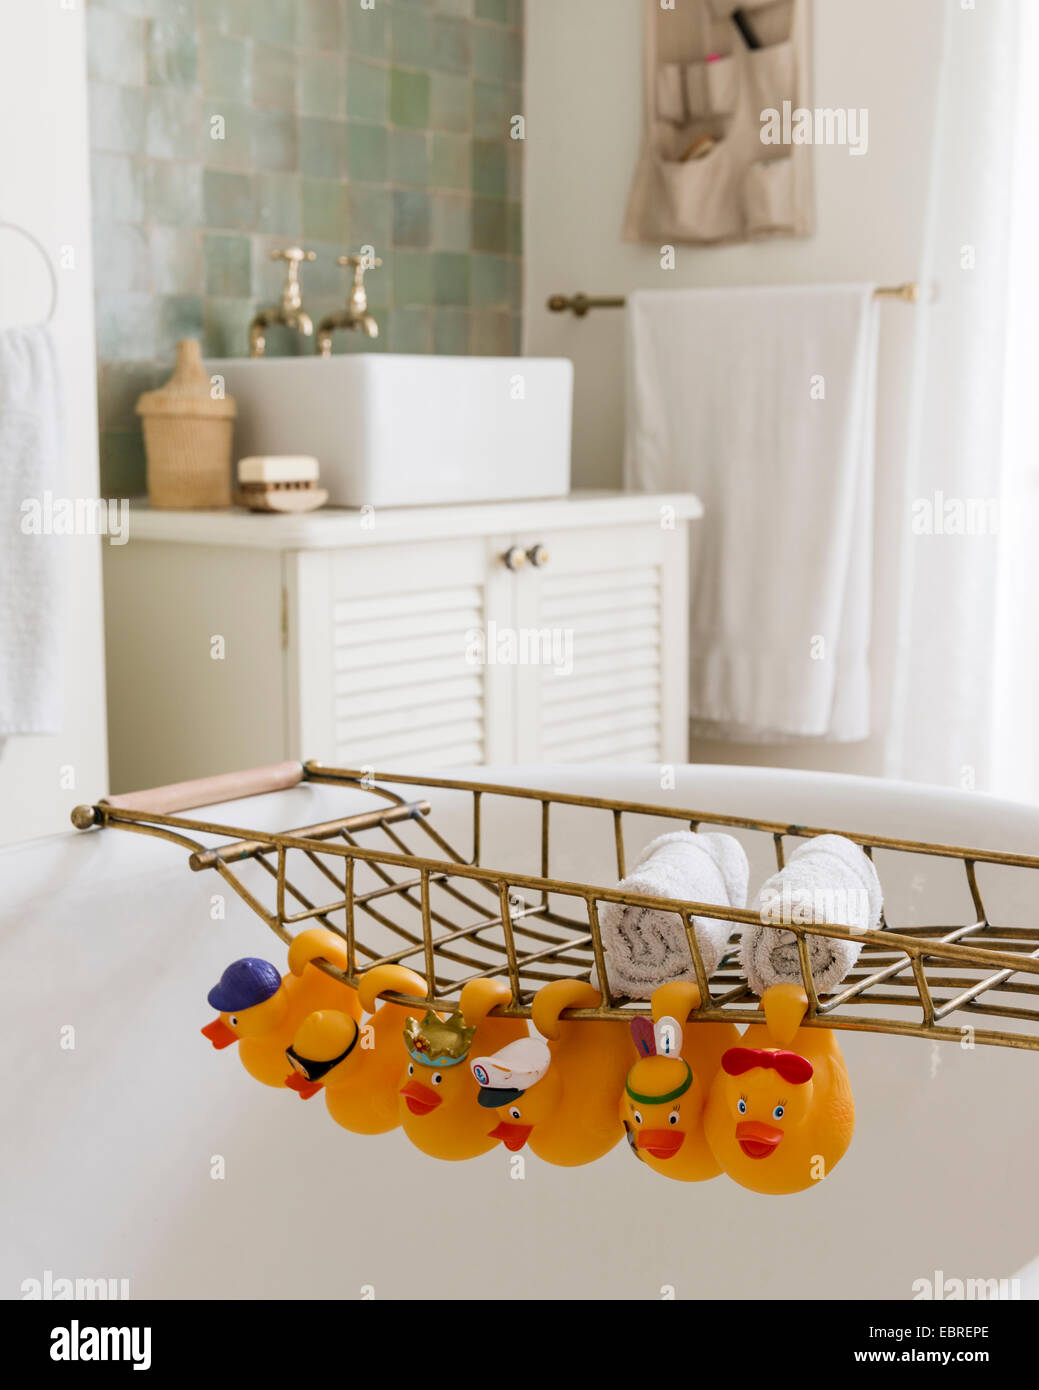 Rubber ducks hang on freestanding roll-top bathrack in North London home - Stock Image